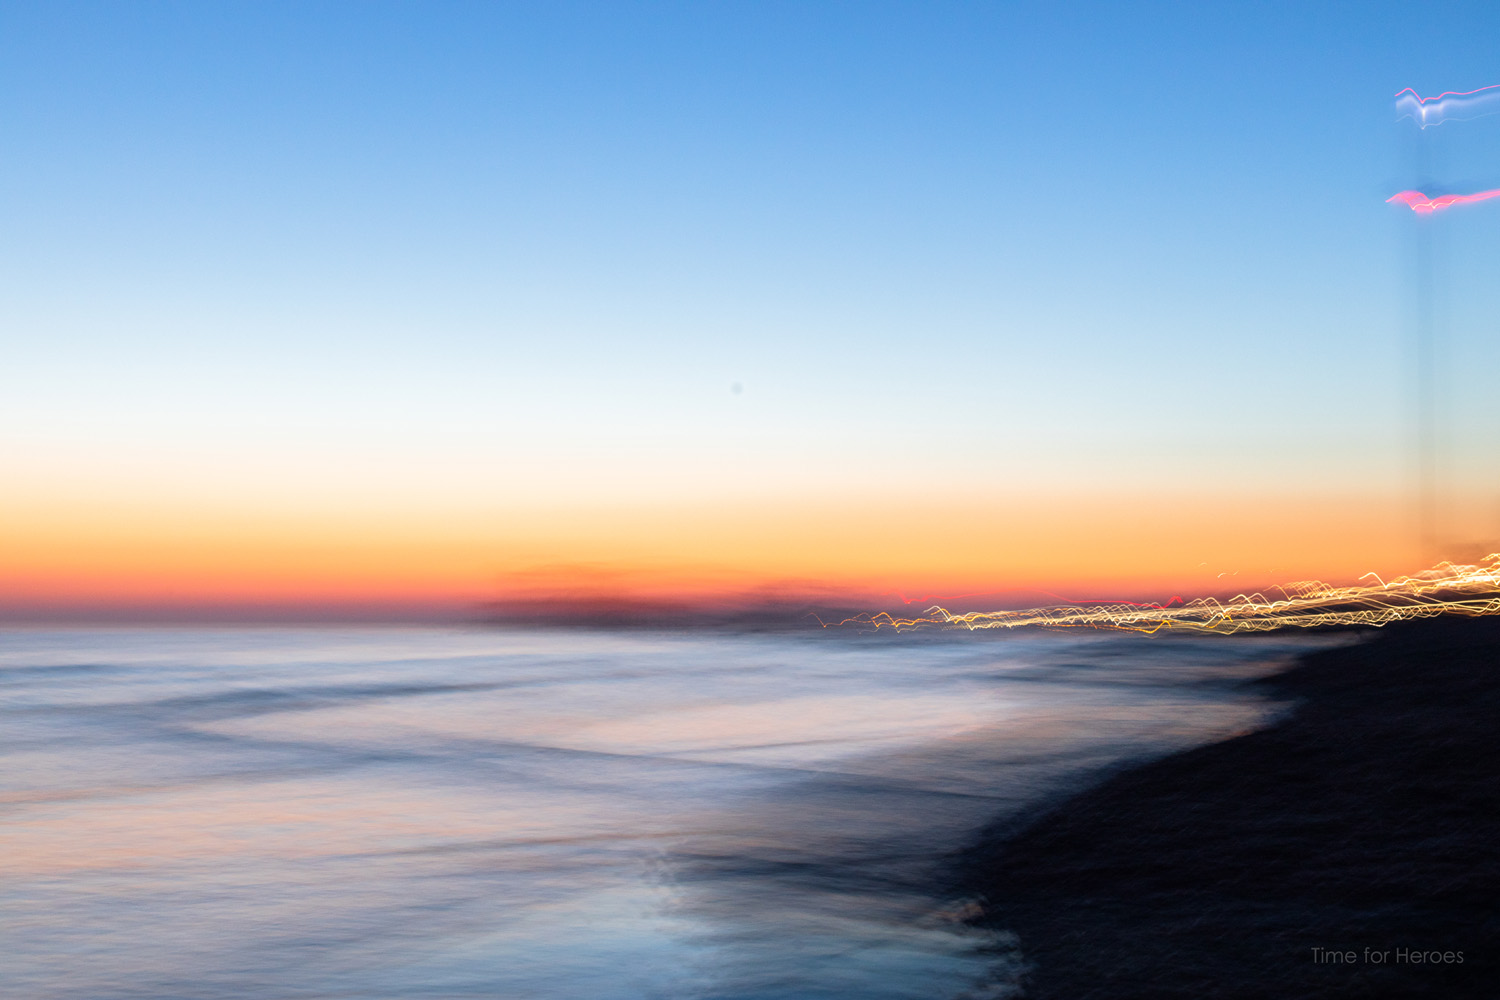 ICM Saharan Seafront sunset 3 - Brighton - Ashley Laurence - Time for Heroes Photography